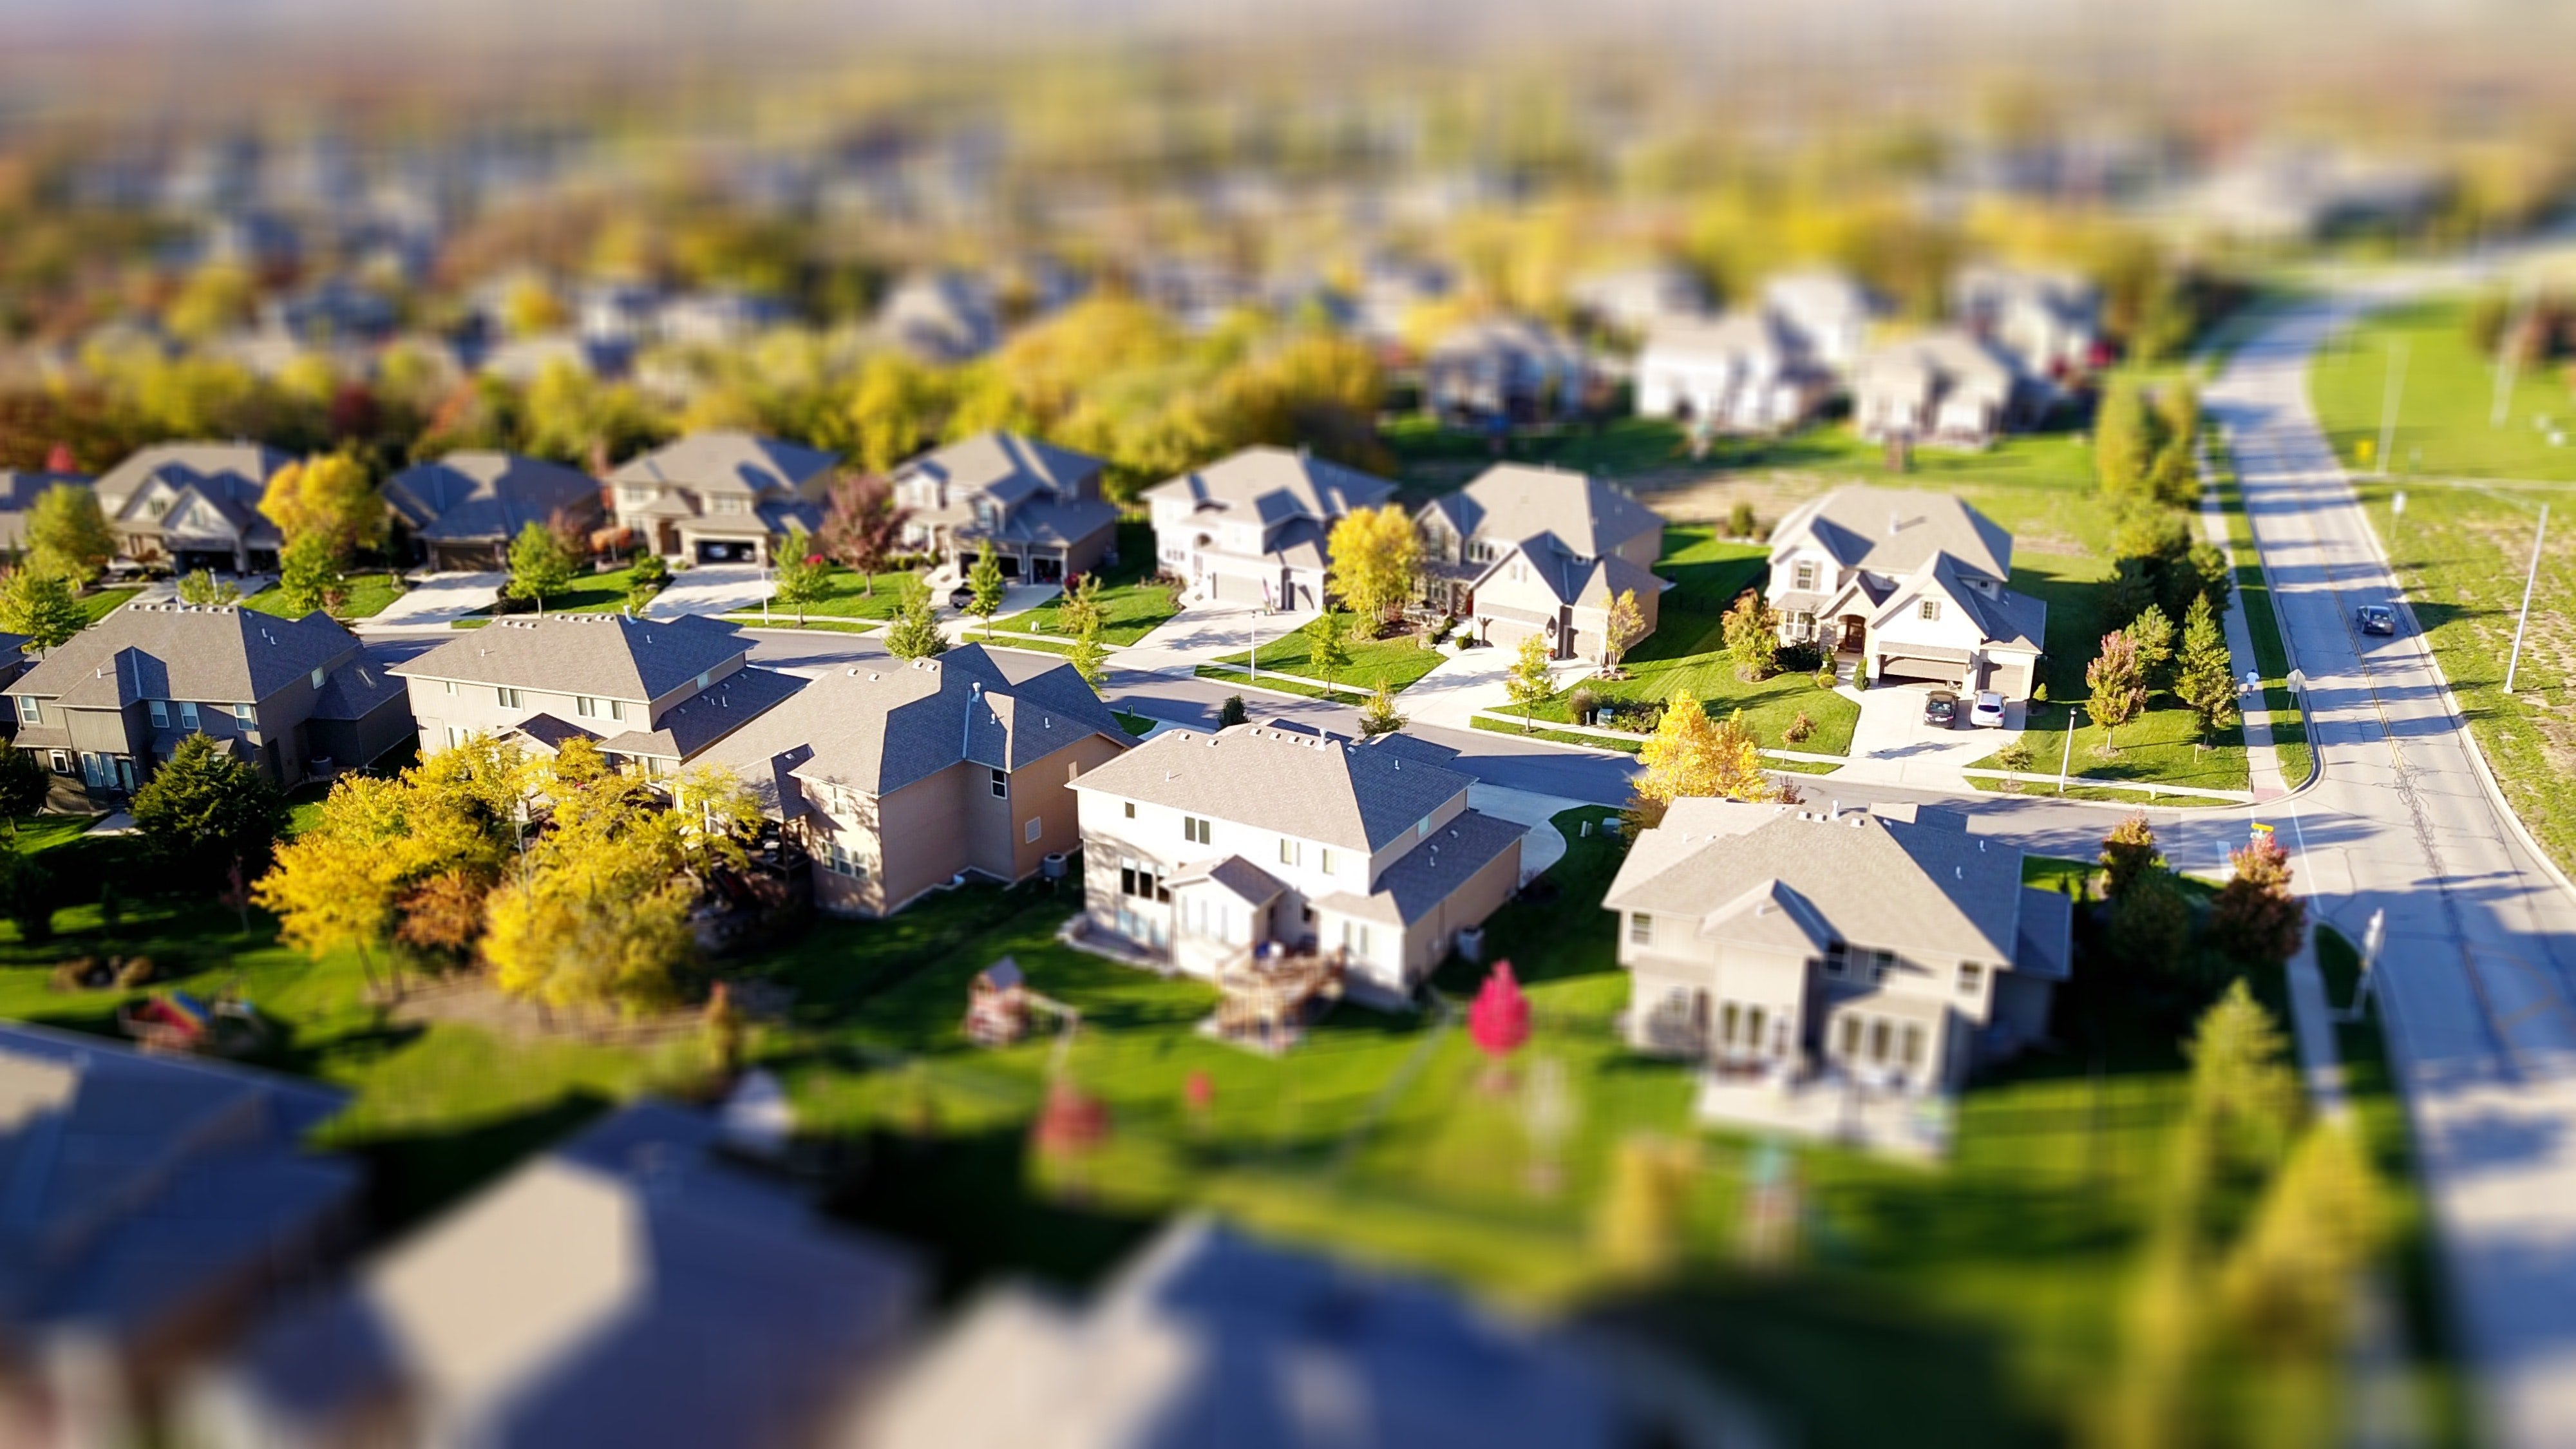 YellowFi fuels more funding into the High Cost Mortgage market in the U.S.